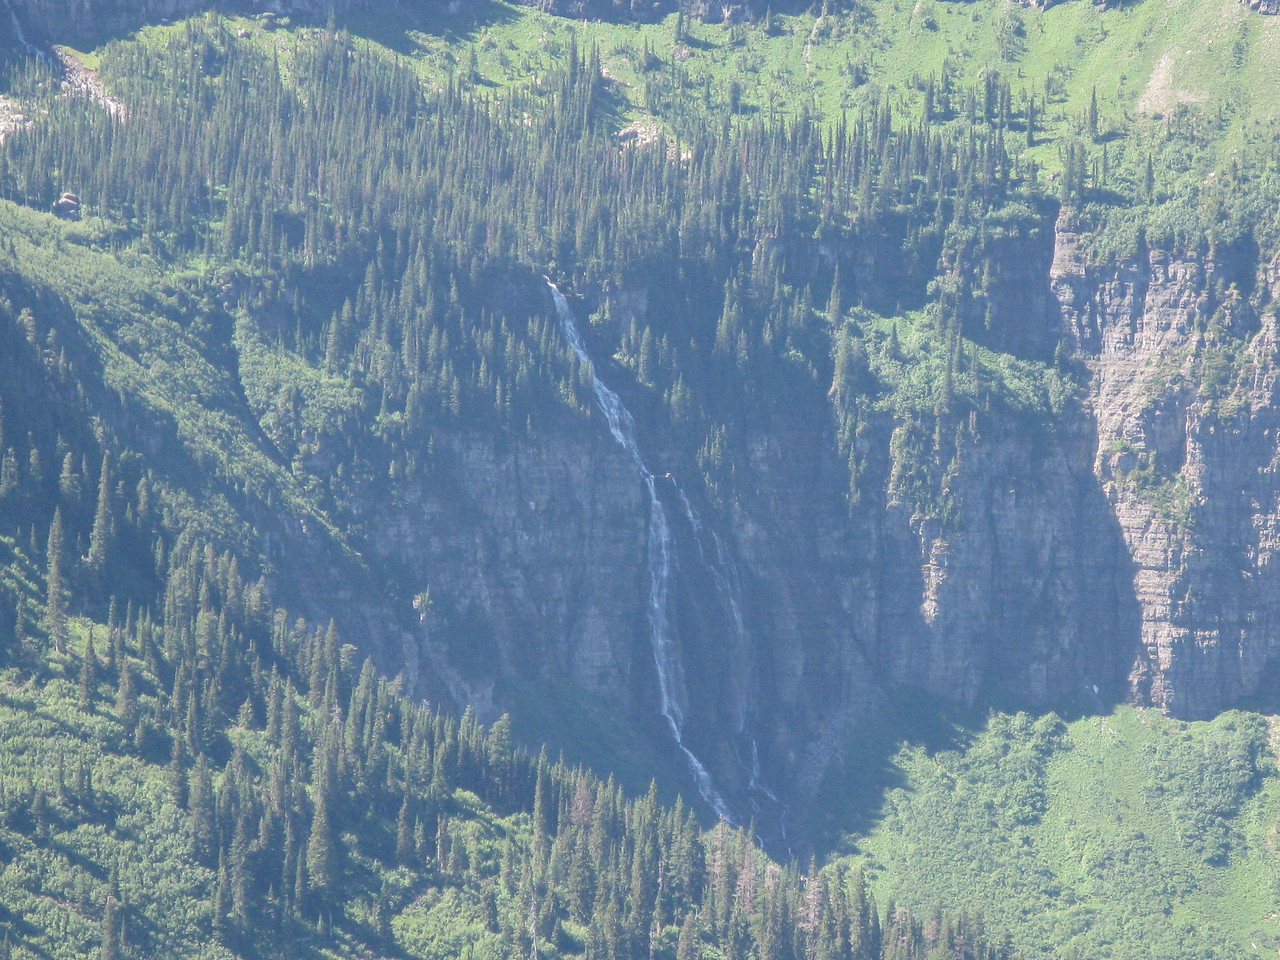 A telephoto view across the valley to Bird Woman Falls.